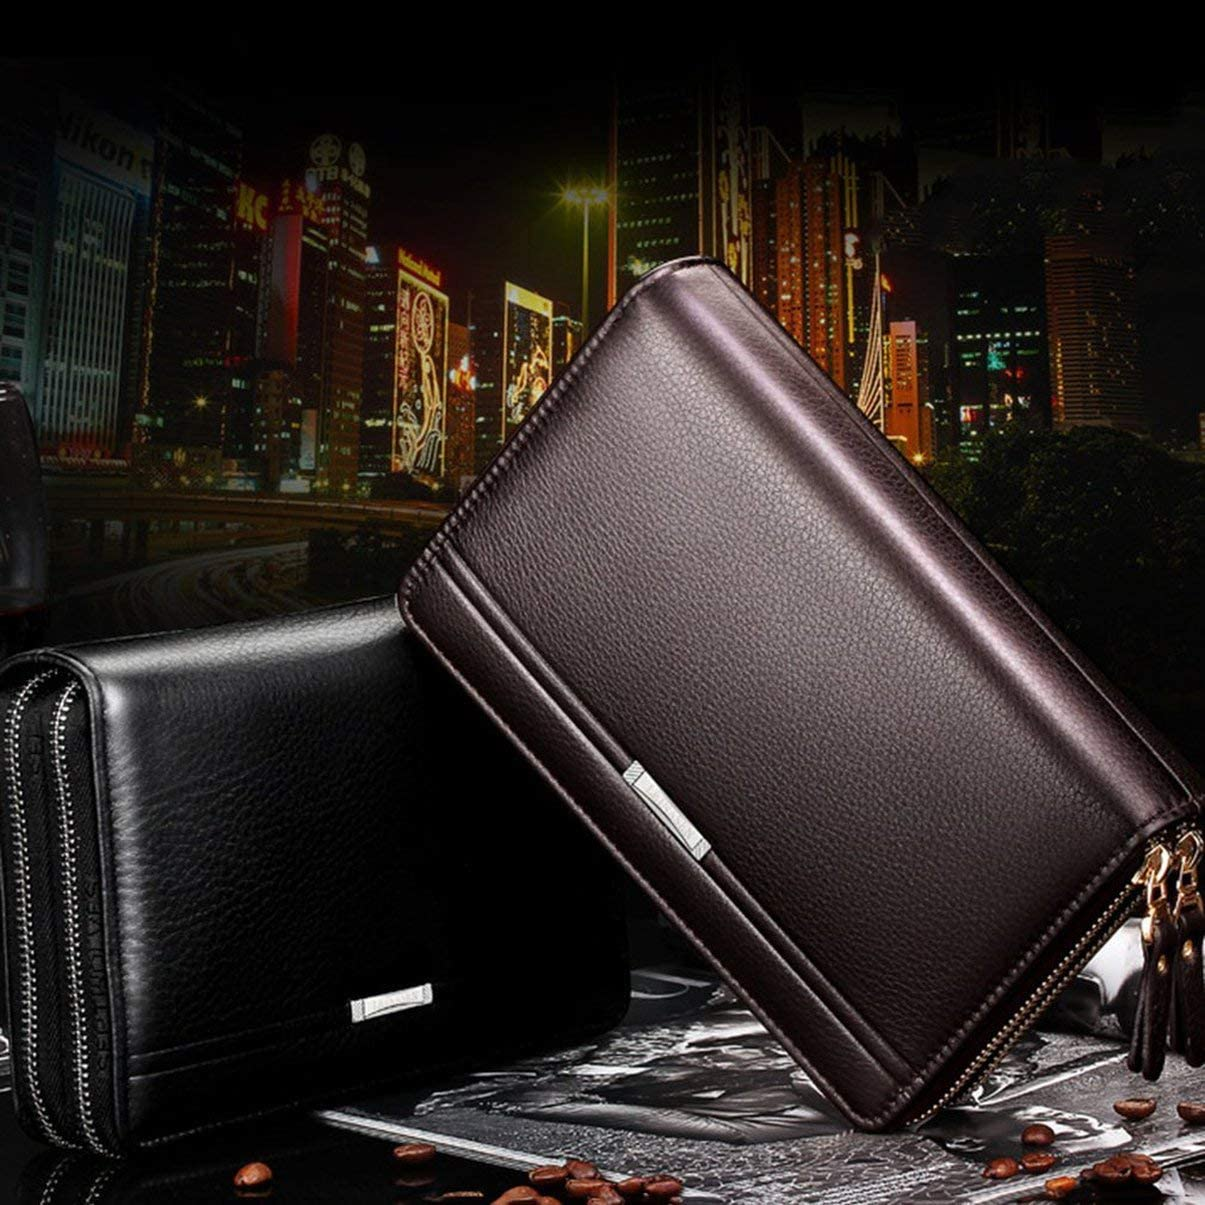 FHJZXDGHNXFGH-FR Hommes /à la mode Clutch Bag Long Purse Leather Wallet Lichee Motif Sac /à main Double Fermetures /À Glissi/ère M/âle Sac Pour Travailler Shopping